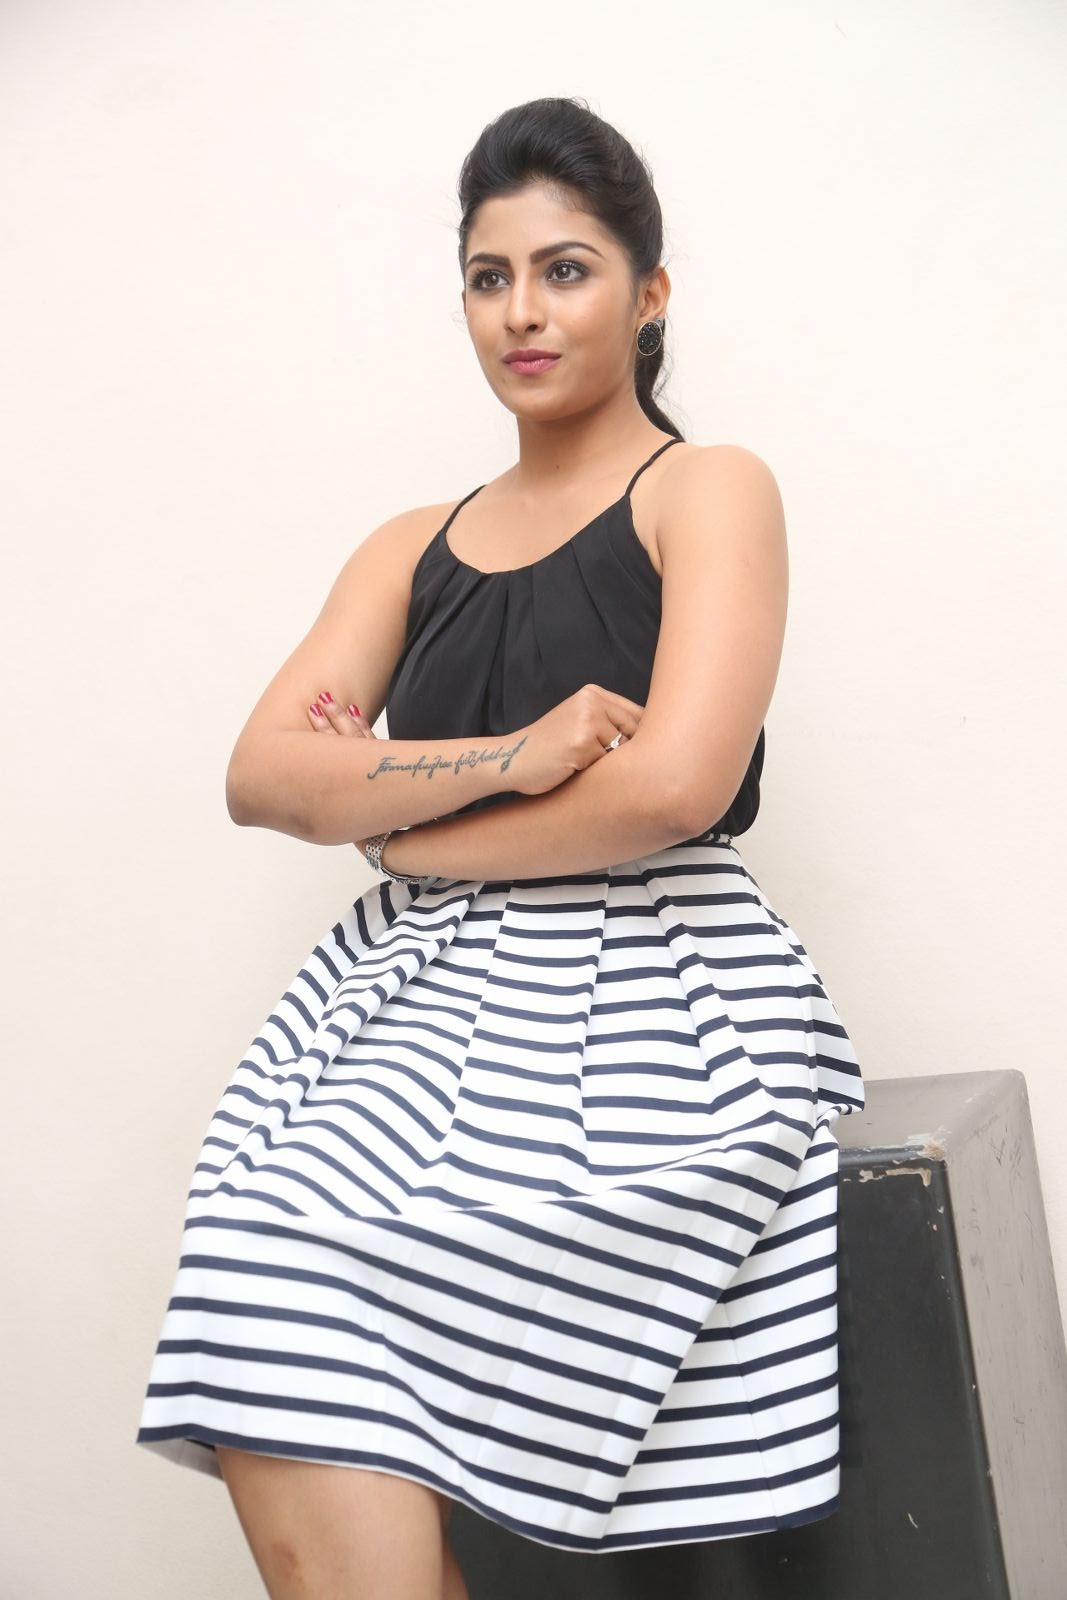 kruthika jayakumar new photos-HQ-Photo-43